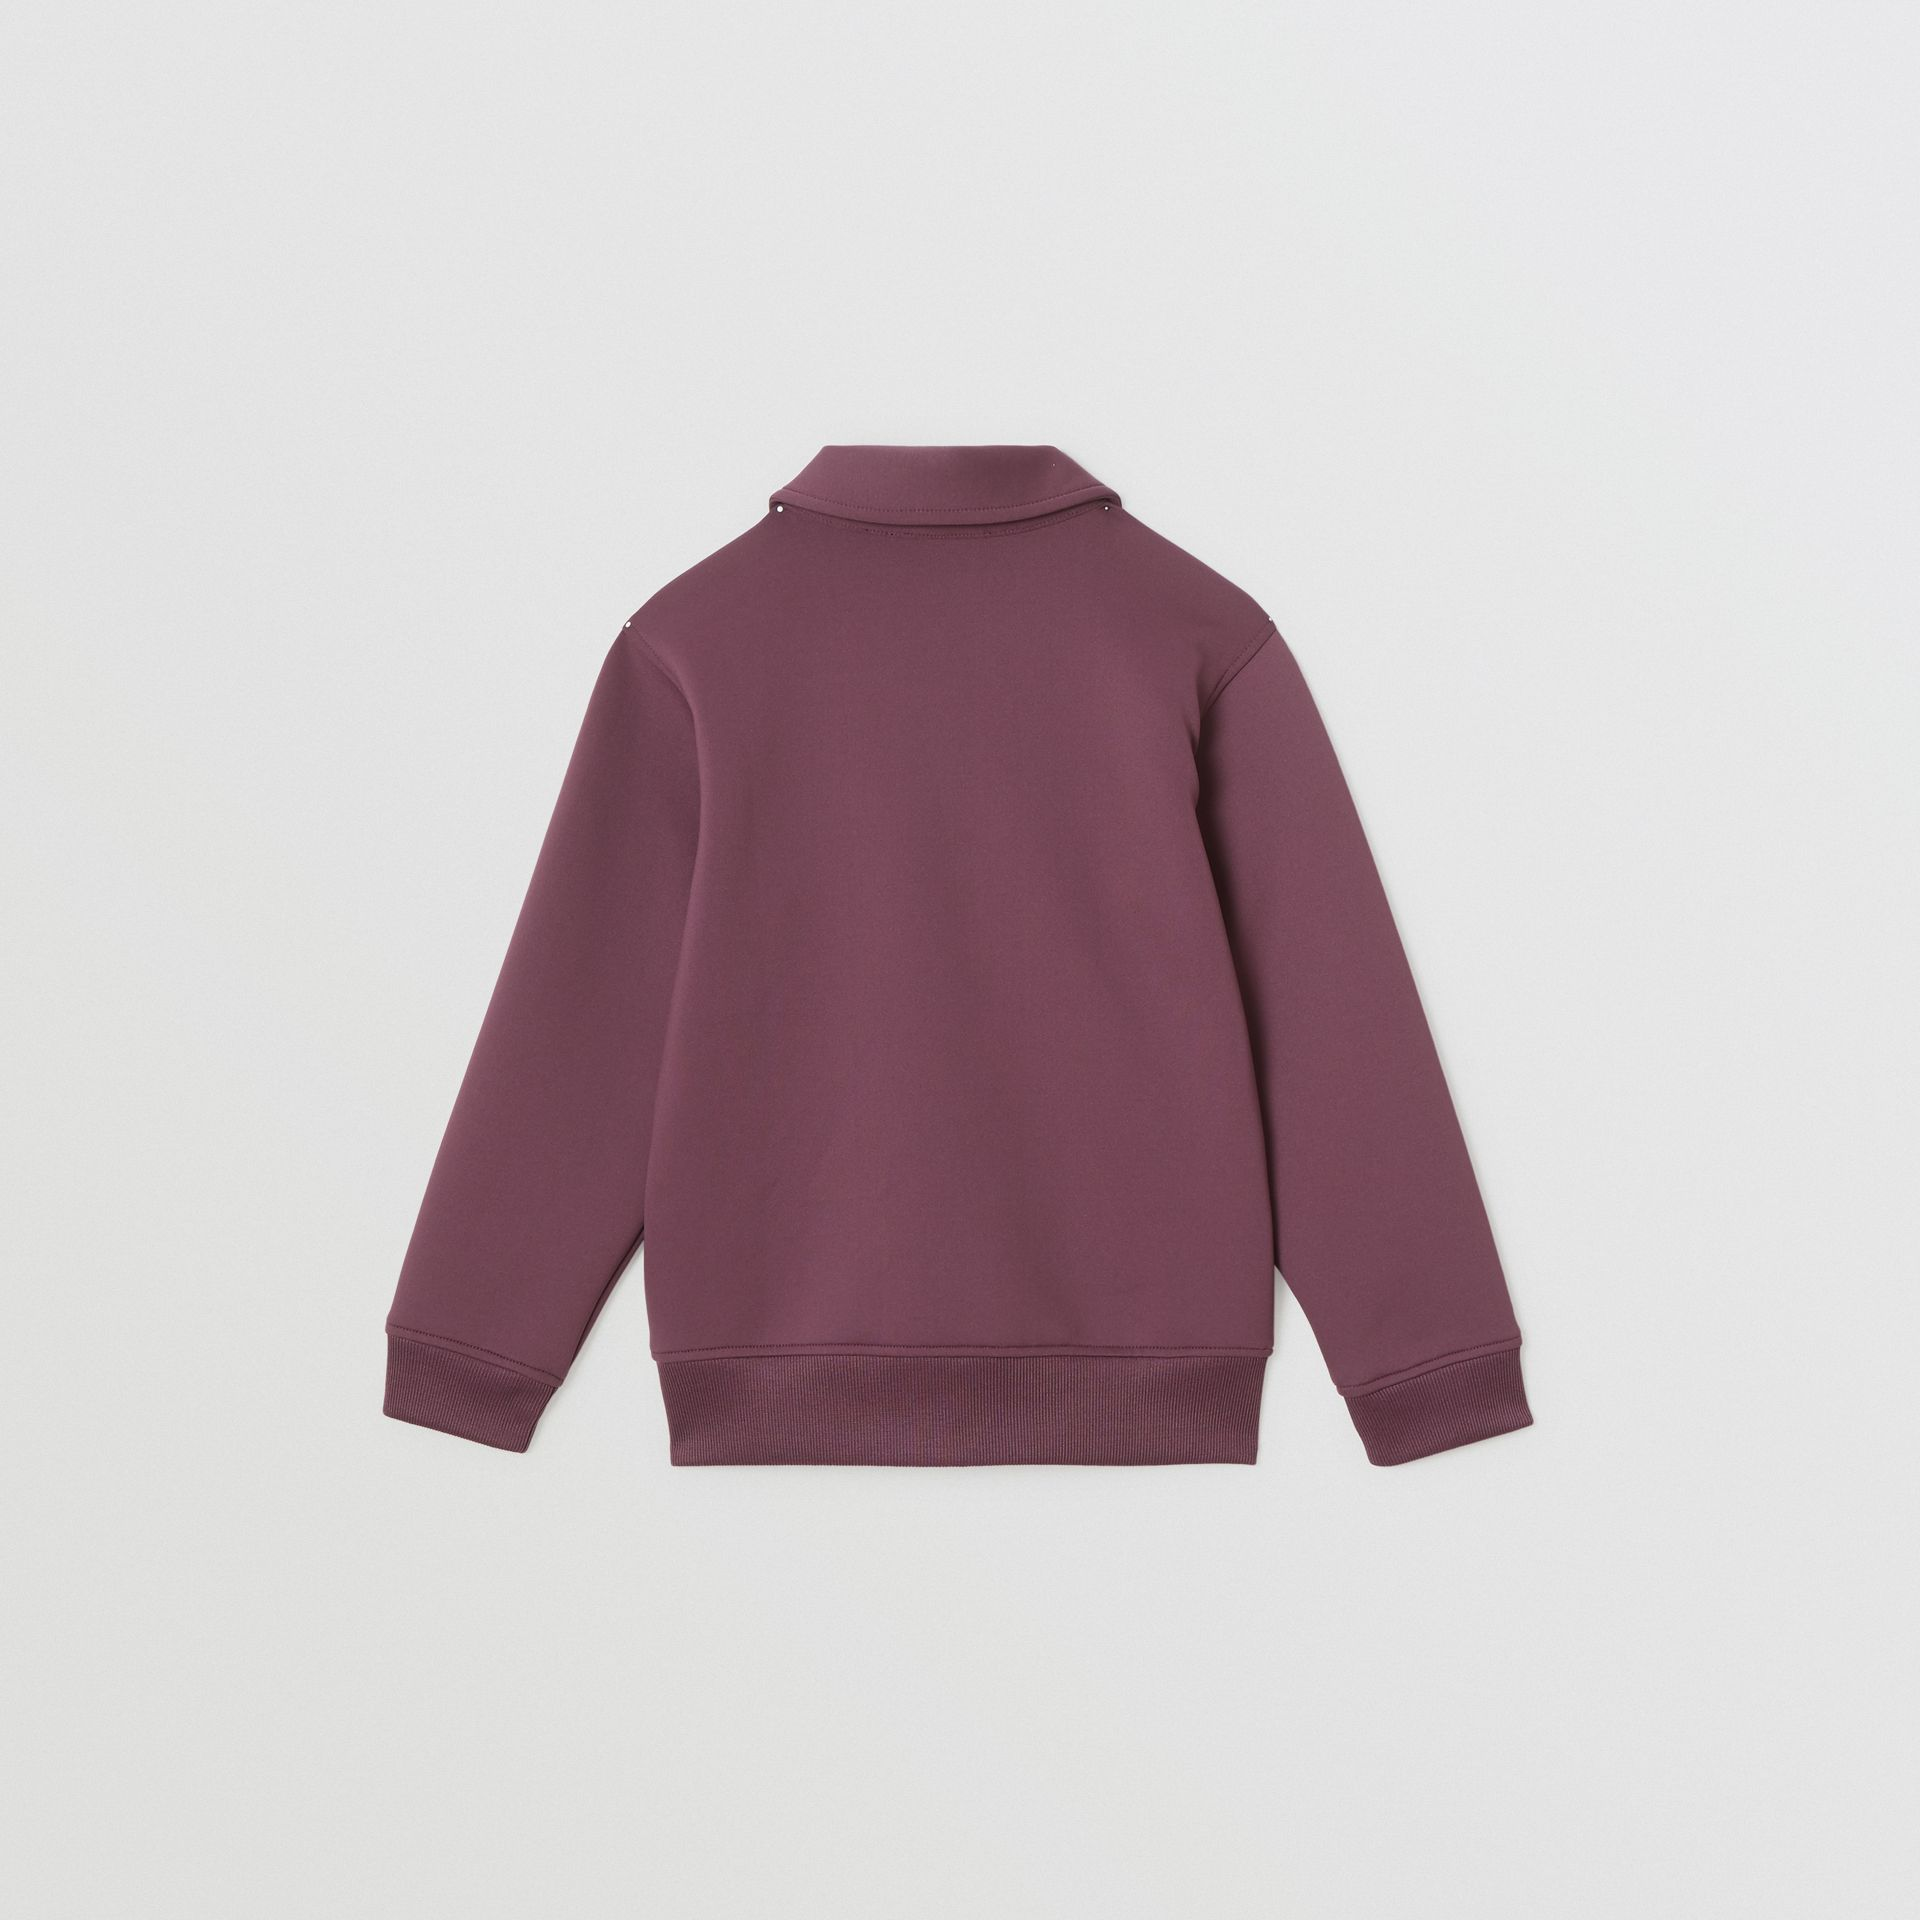 Logo Print Lightweight Track Top in Claret | Burberry - gallery image 4